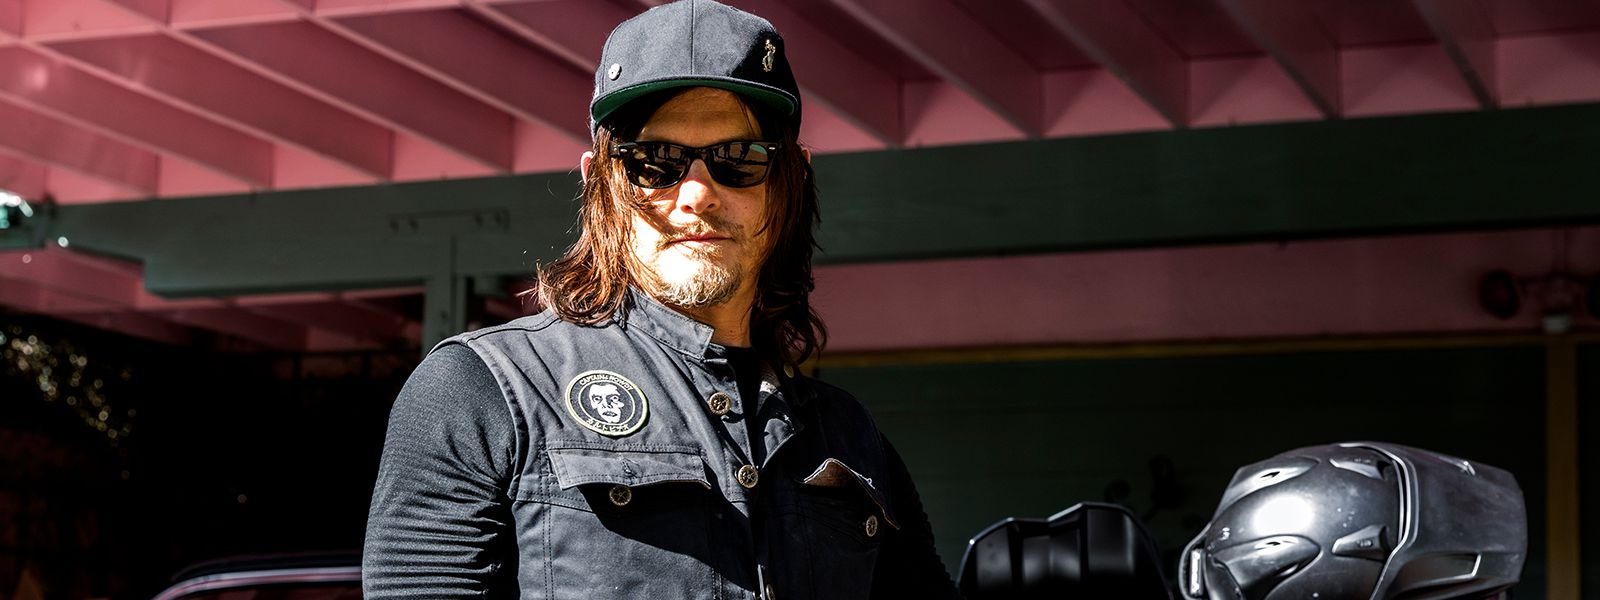 ride-203-norman-reedus-800×600